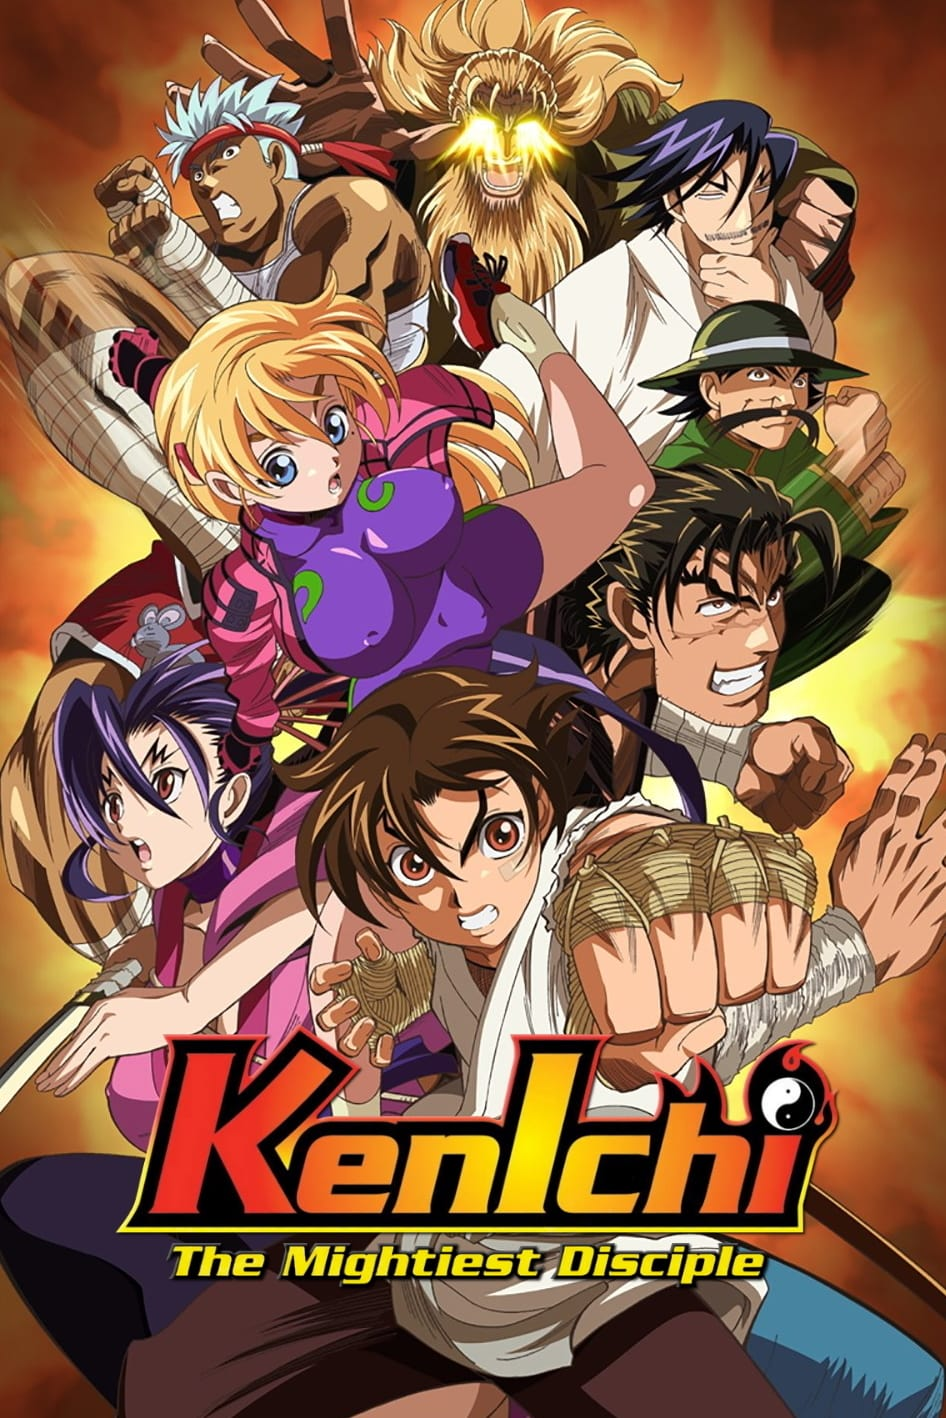 Kenichi: The Mightiest Disciple Anime Completo Latino 720p